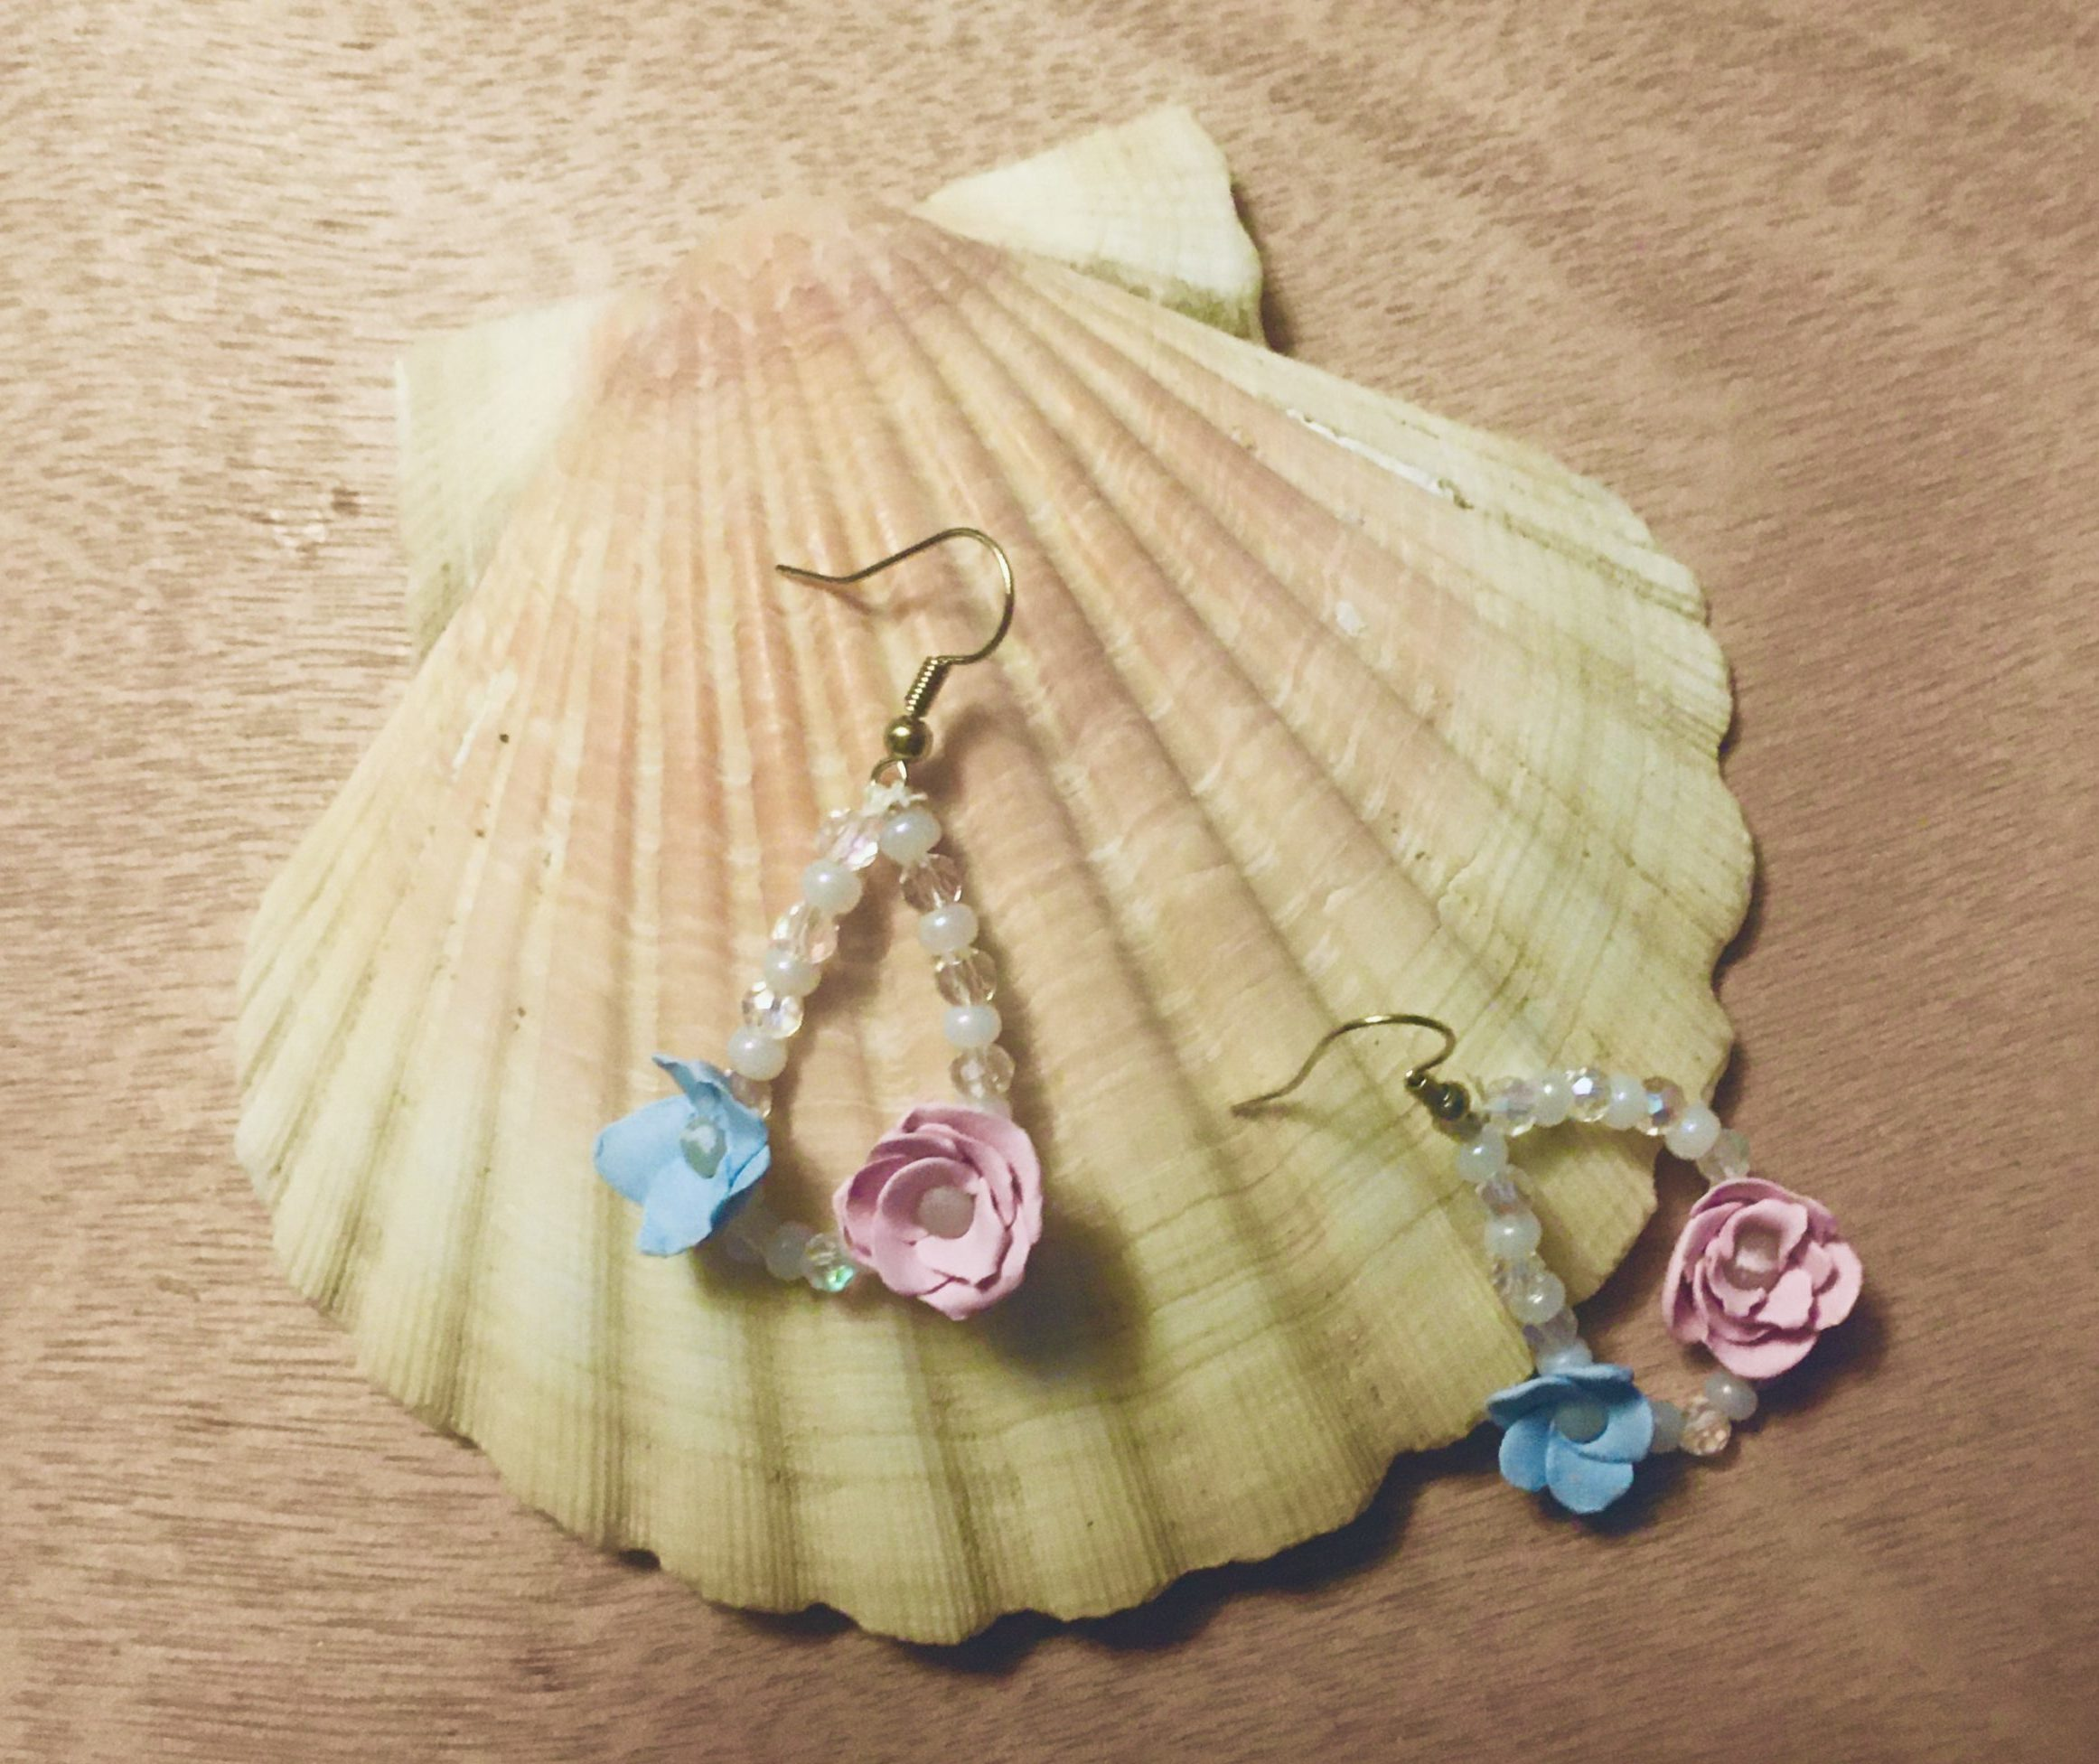 The journey of each unique creation brings its own joy, much like these beautiful pastel flower earrings brought me.